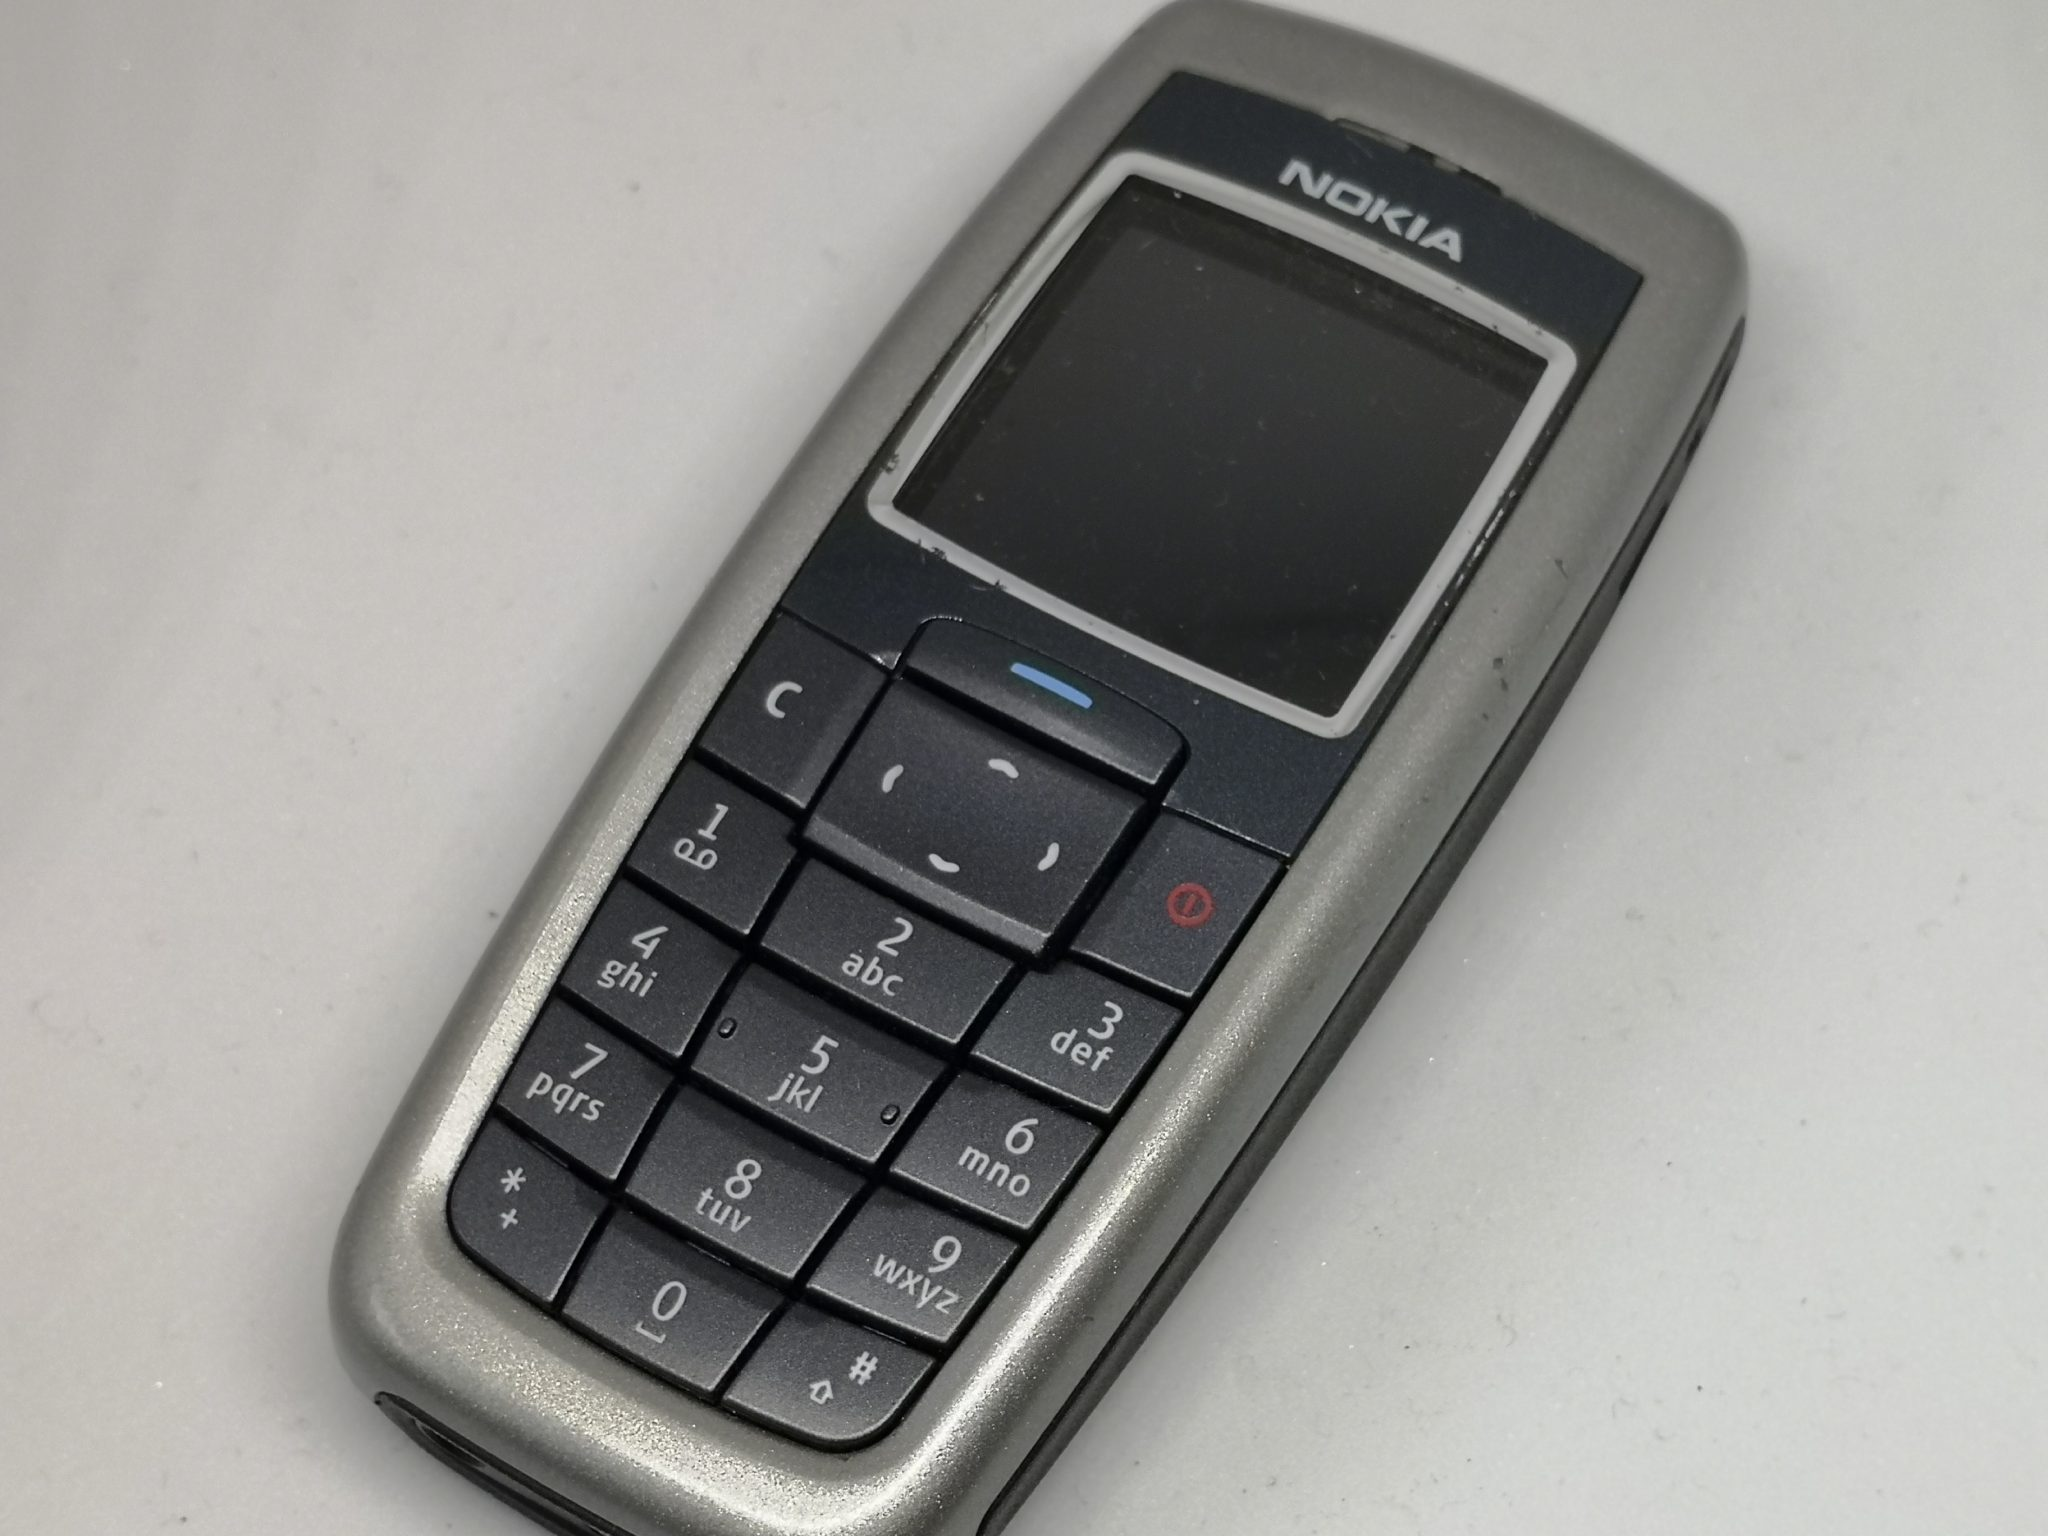 Nokia 2600 Review - A New Line of Budget Mobile Phone